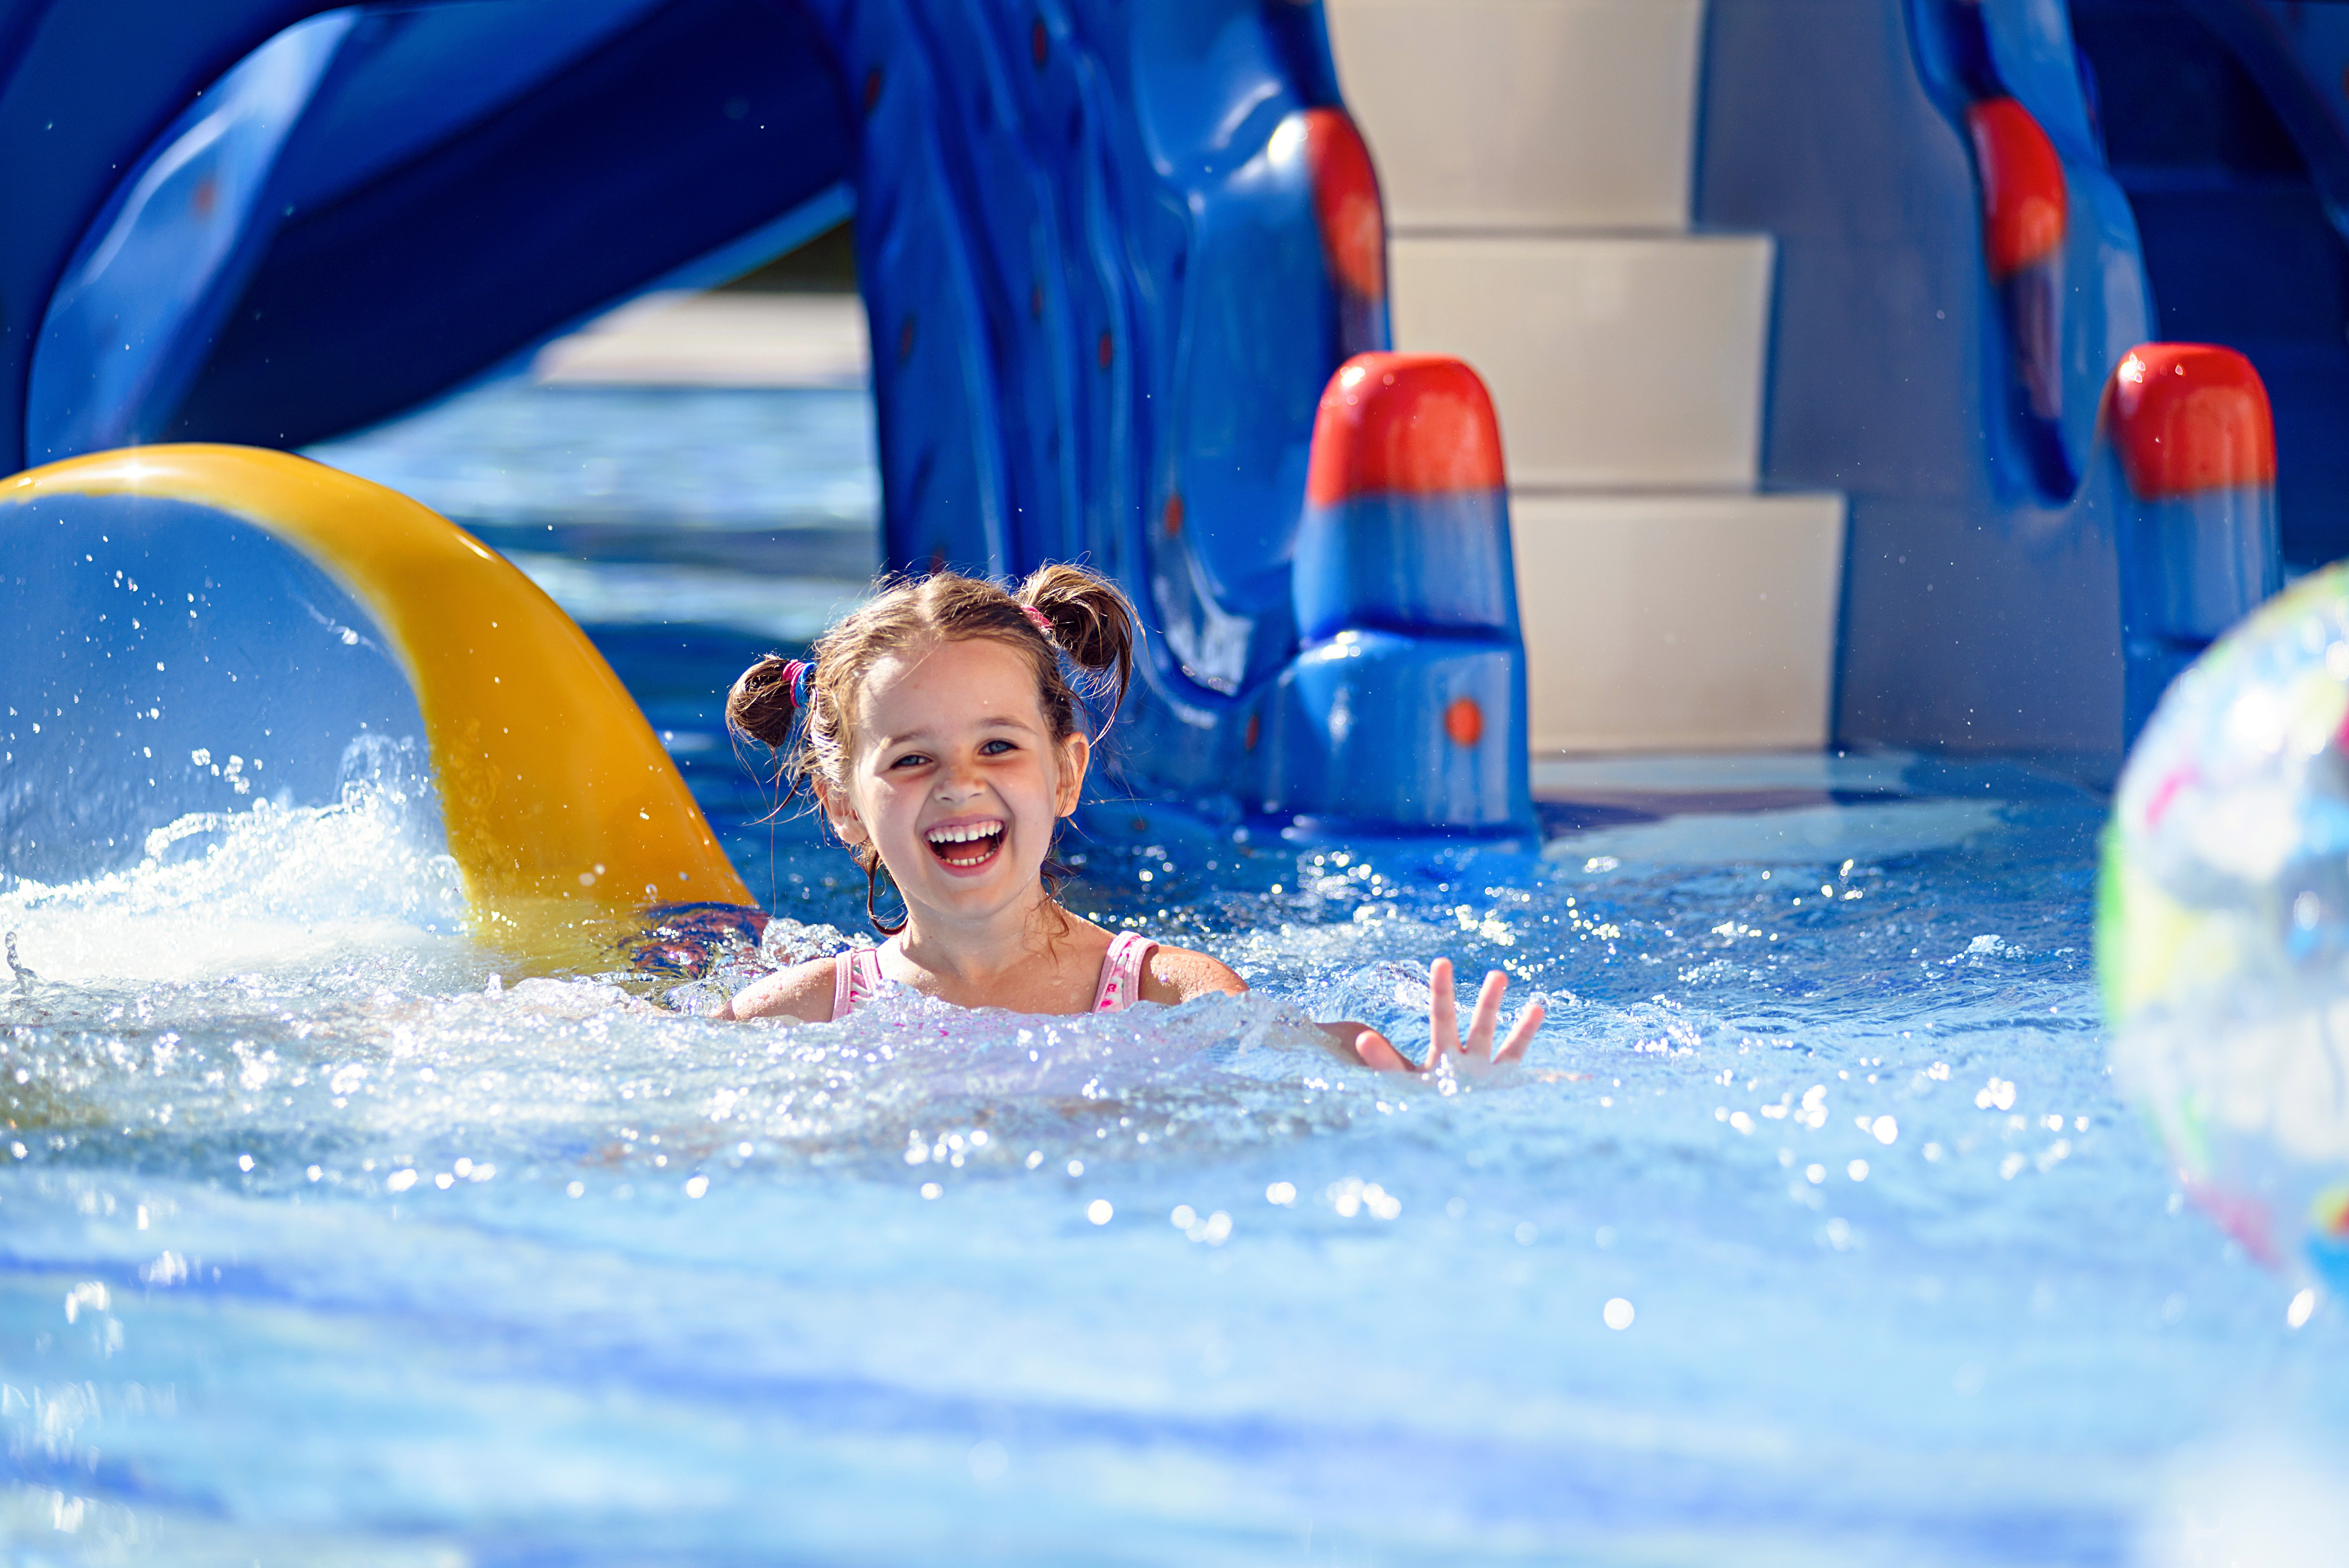 Check Out the Y's Community Pools in Las Vegas